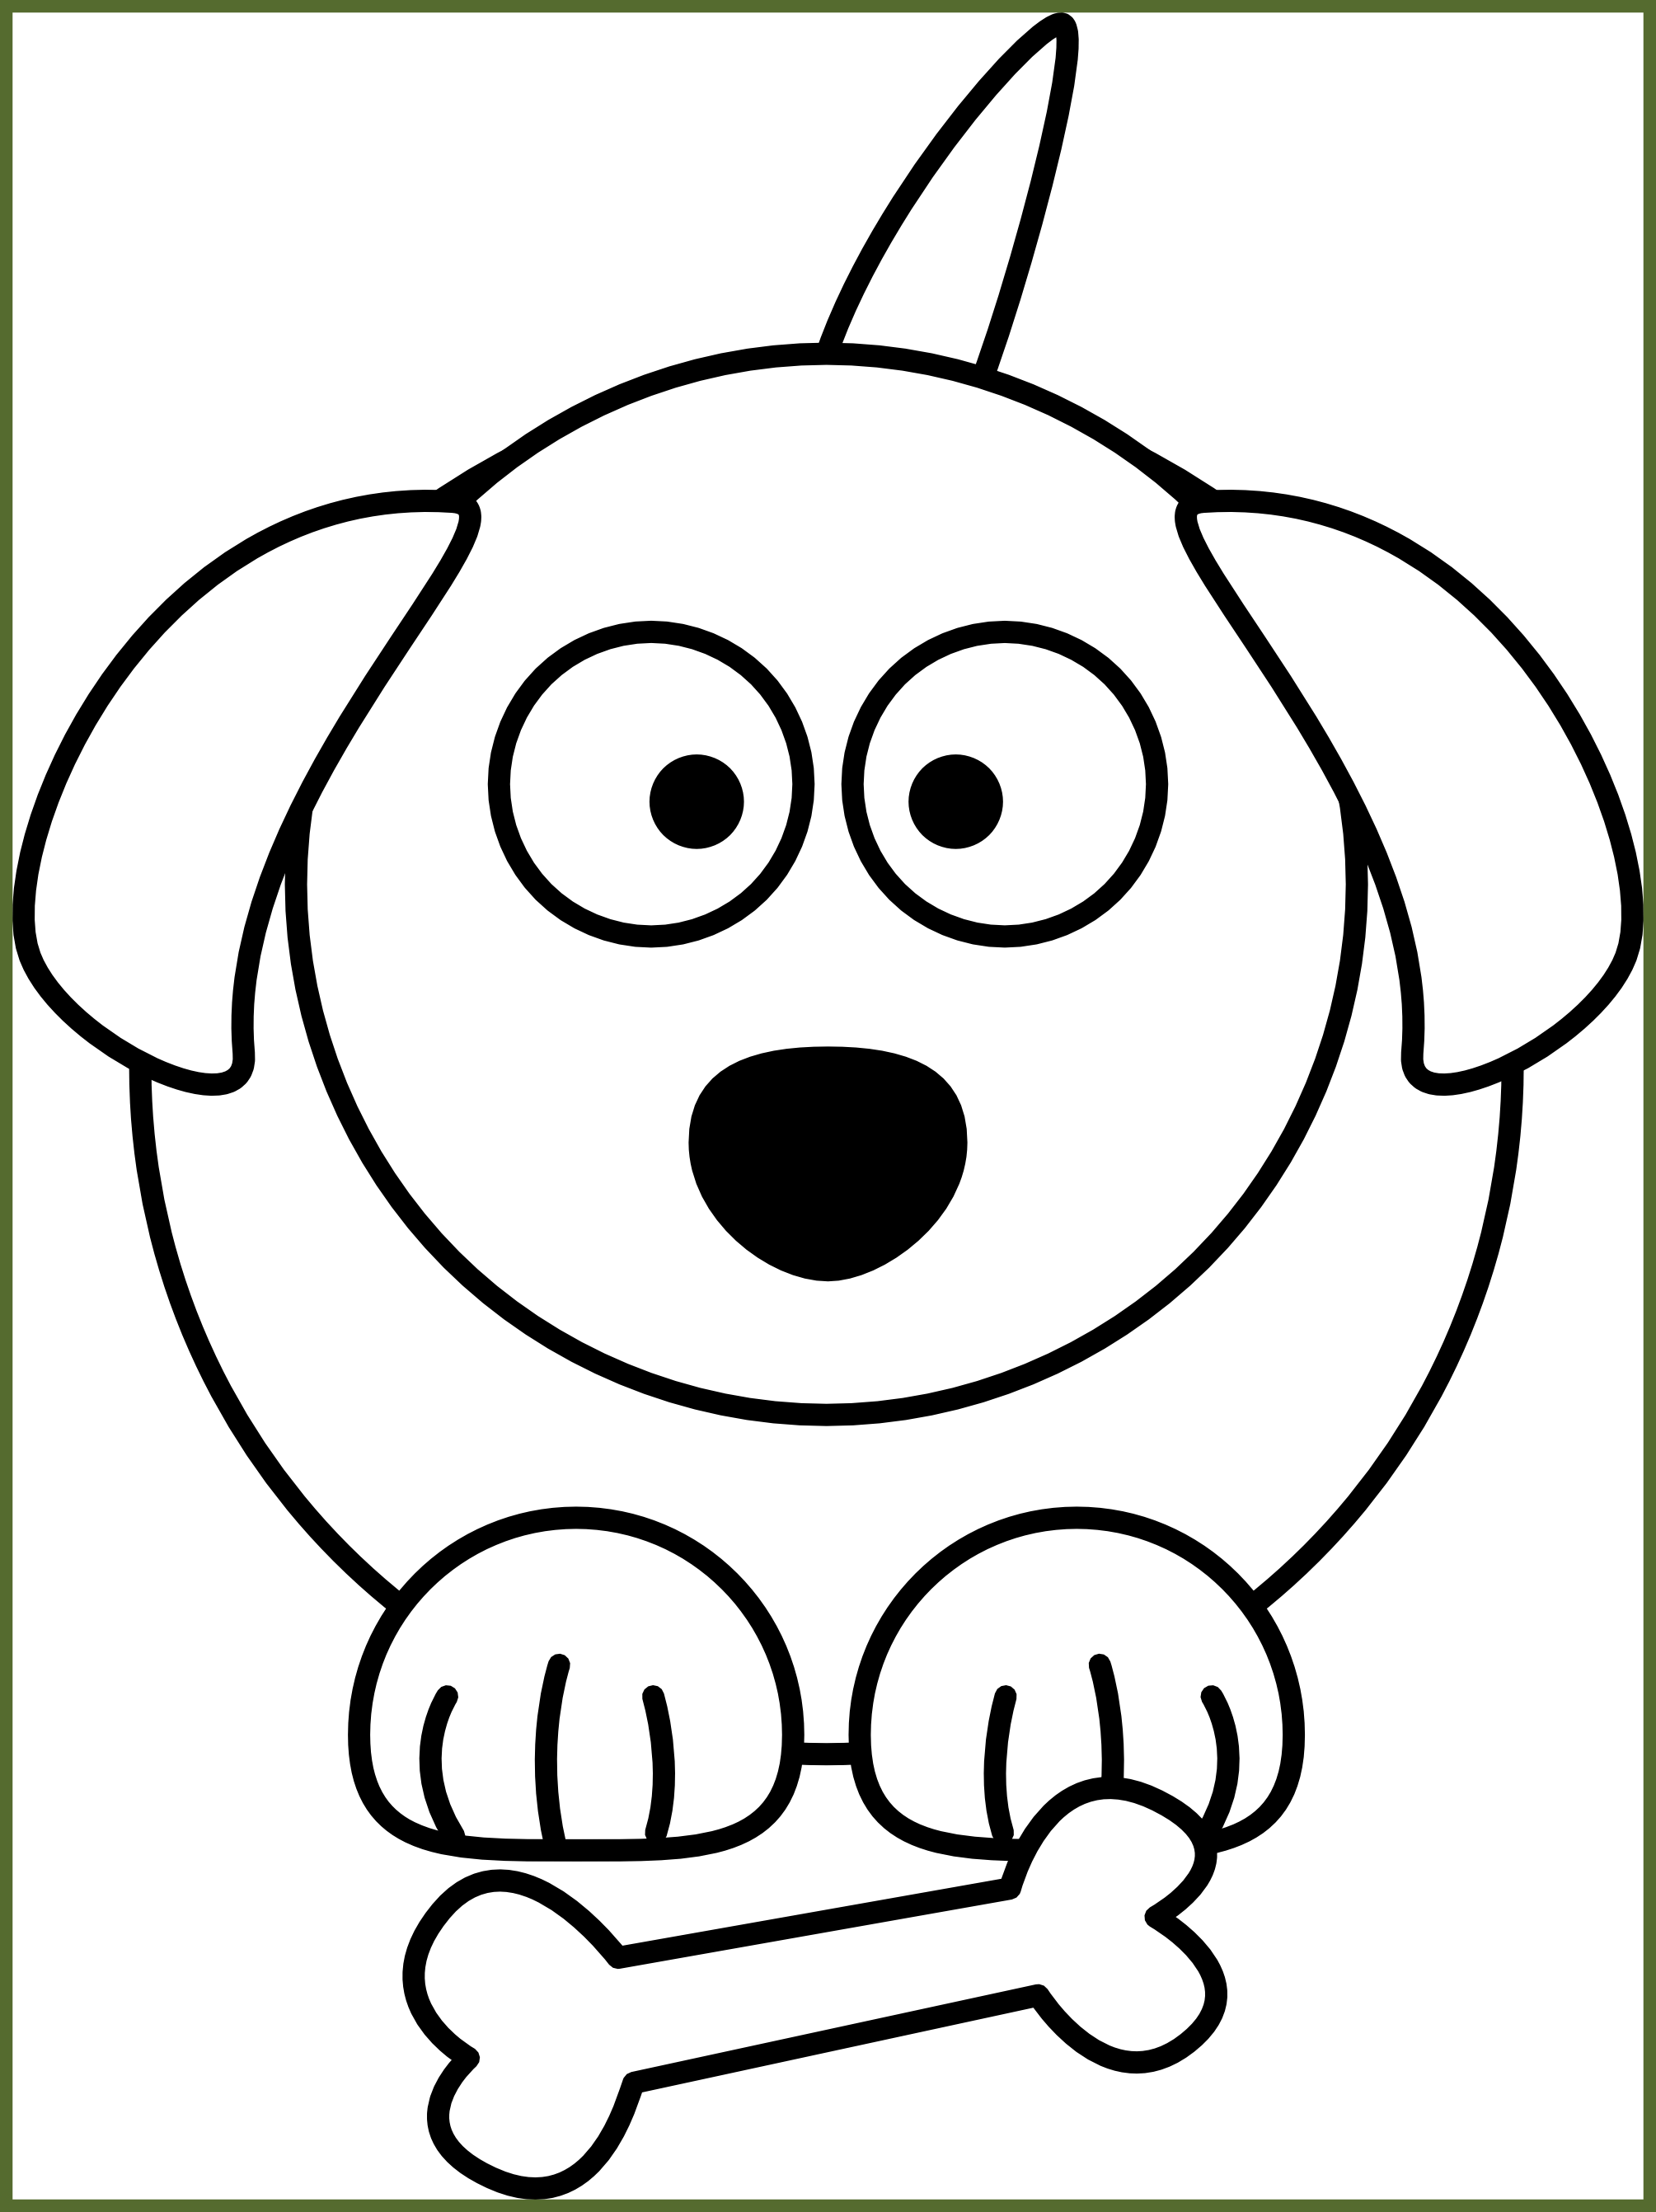 graphic black and white library Best Dog Clipart Black And White Clip Art For Cute Trends Style dog